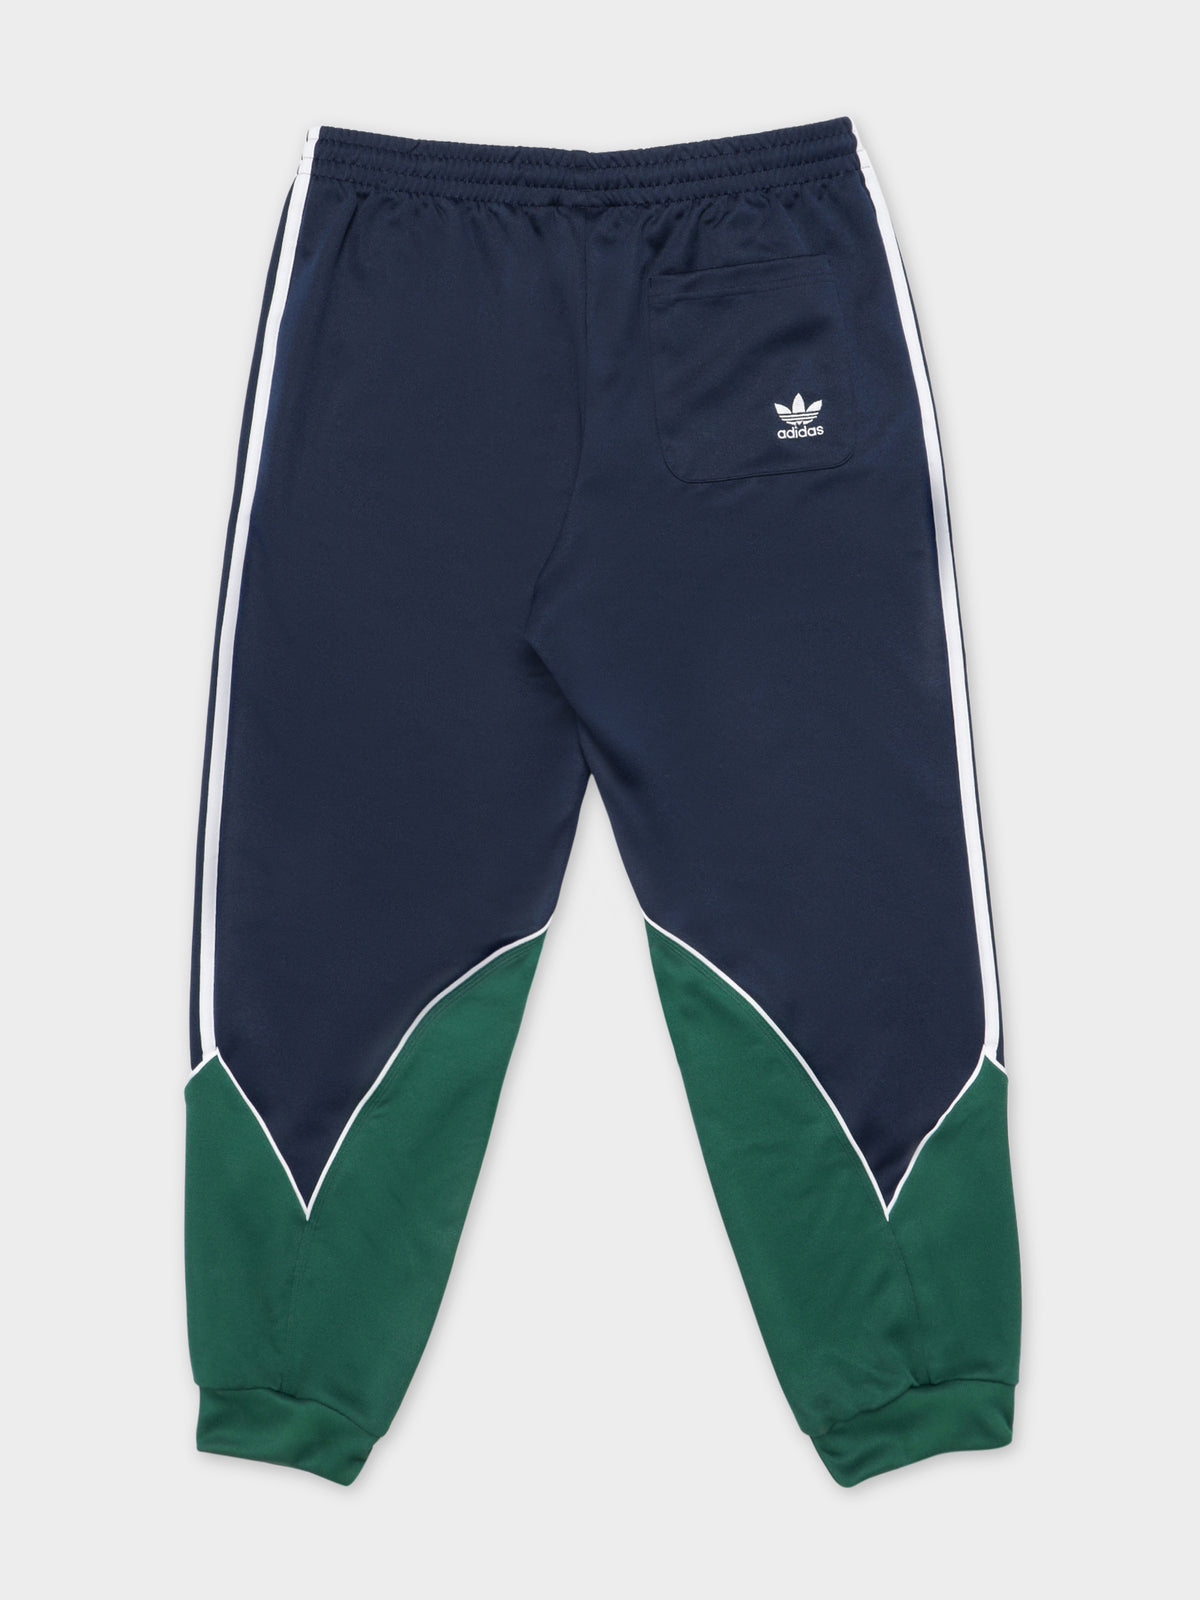 Big Trefoil Abstract Track Pants in Collegiate Navy, Dark Green & White